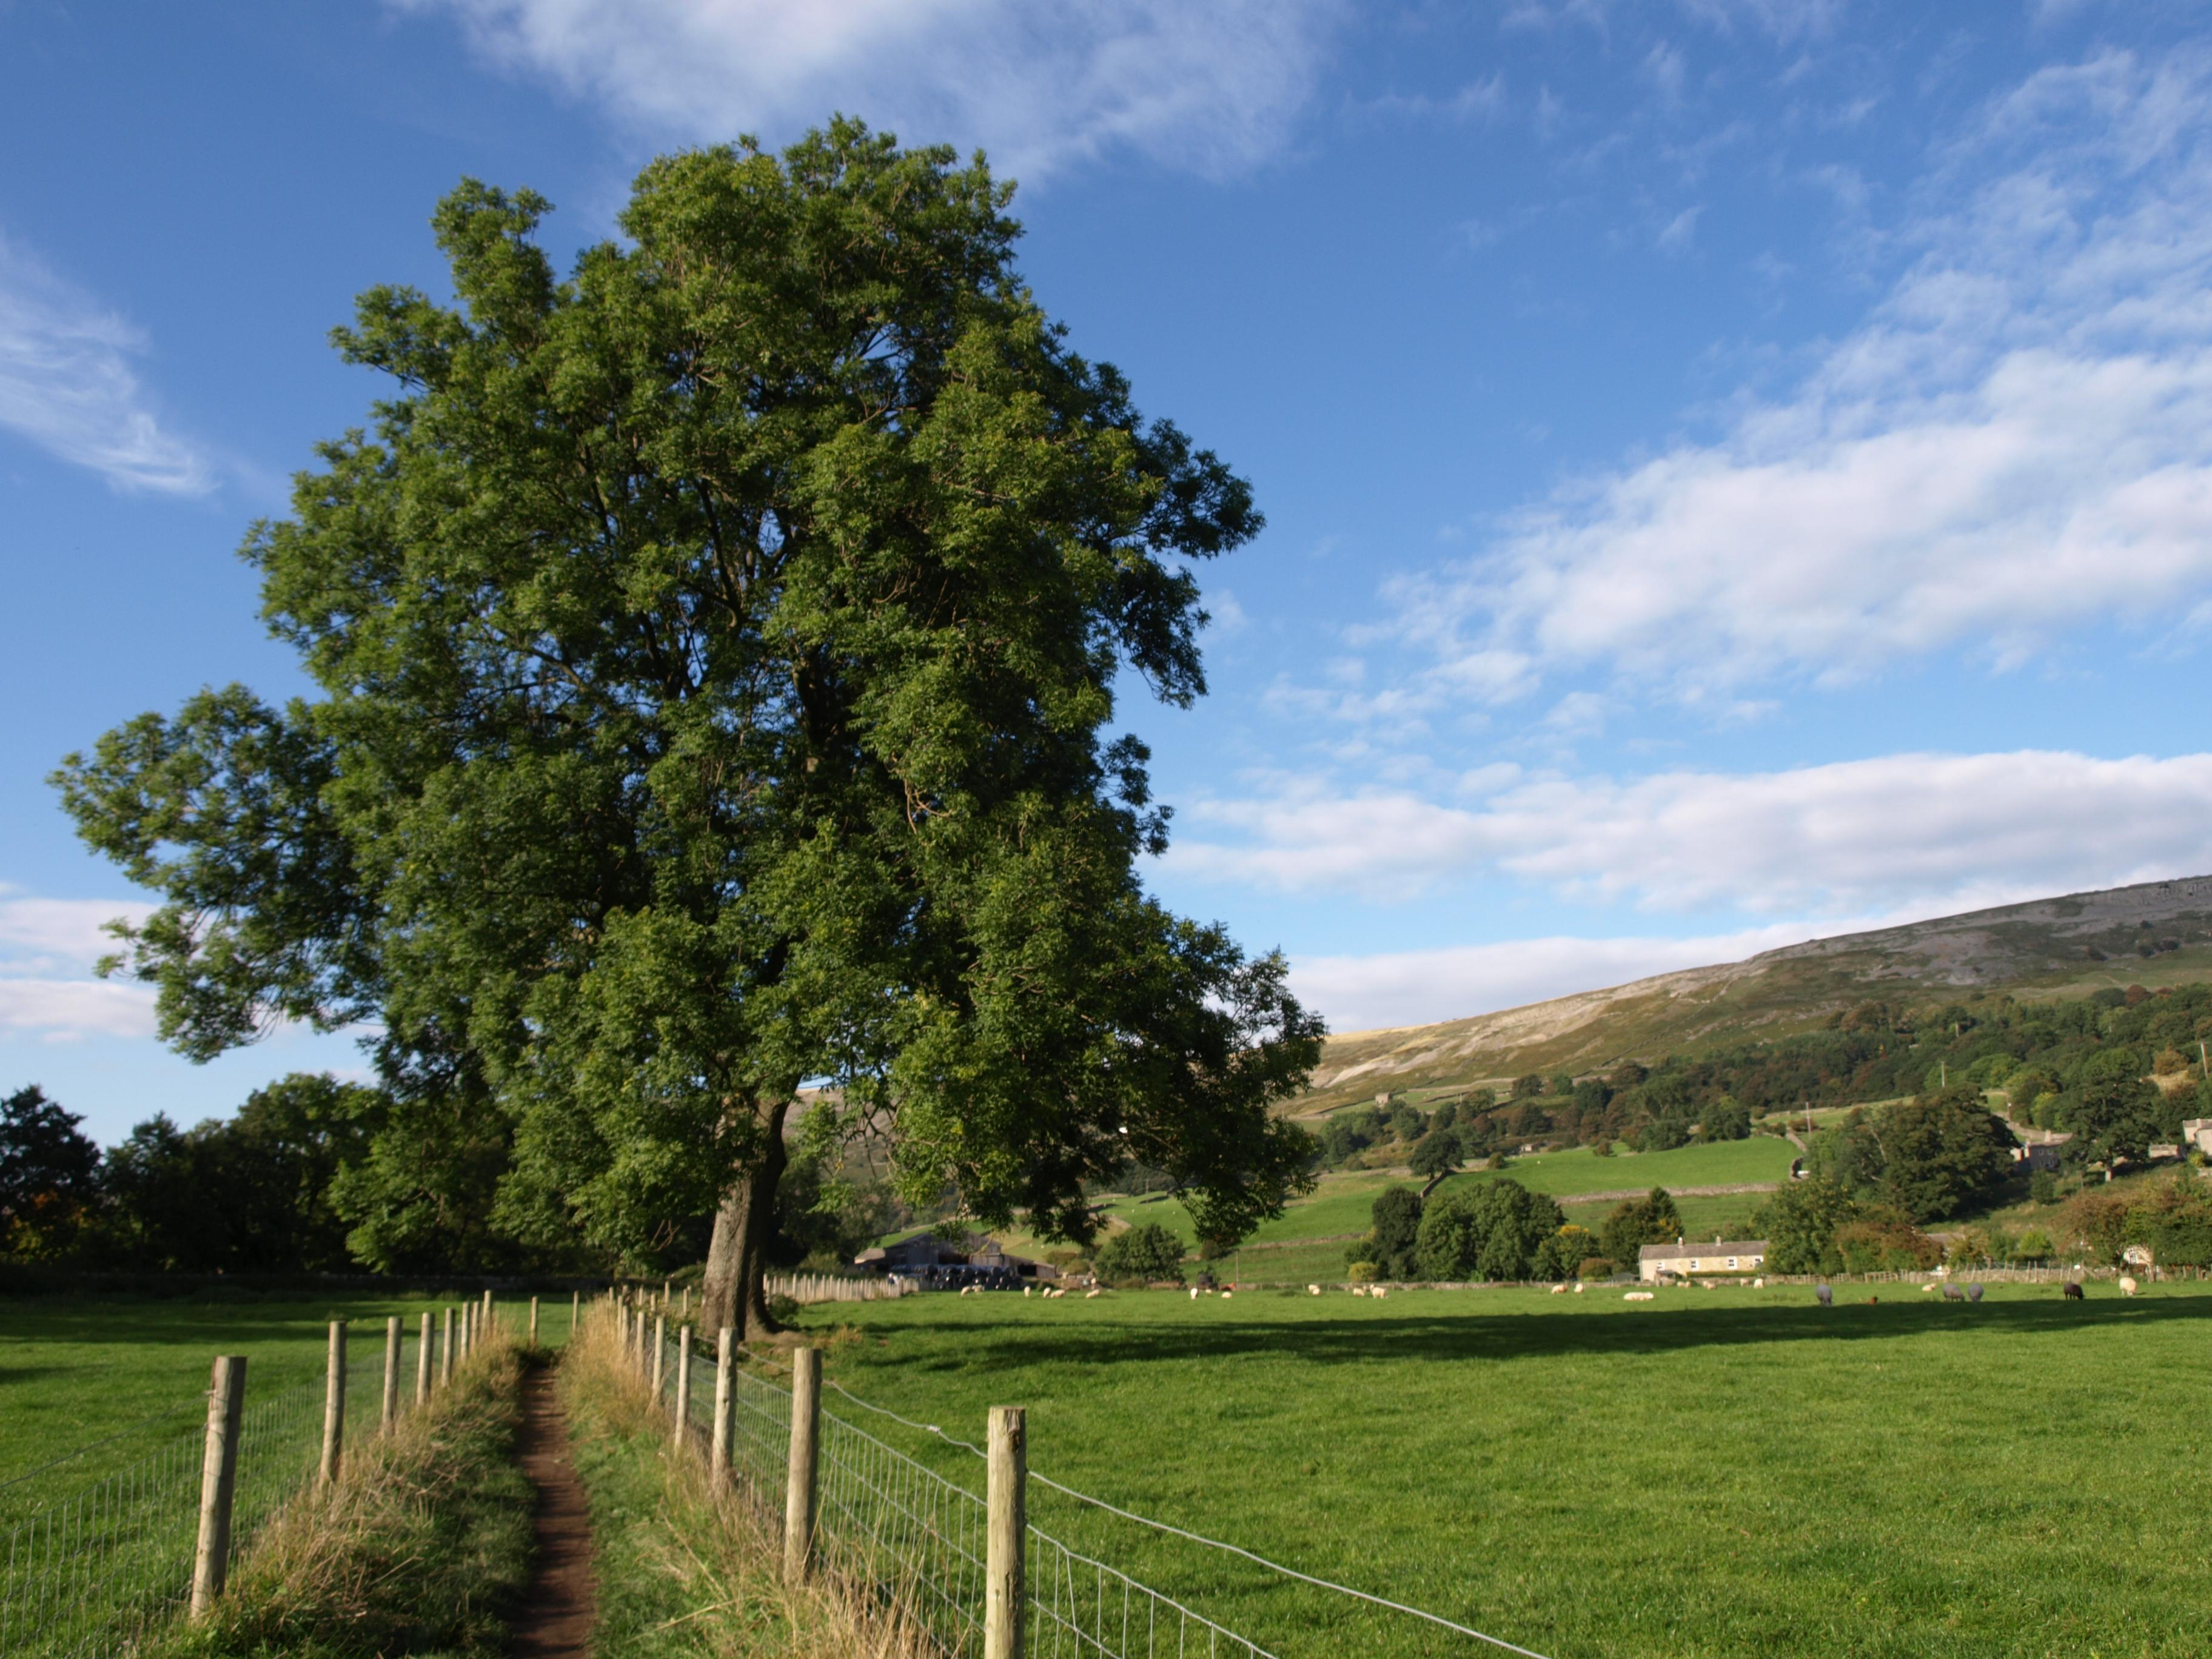 The Swaledale Valley at Reeth